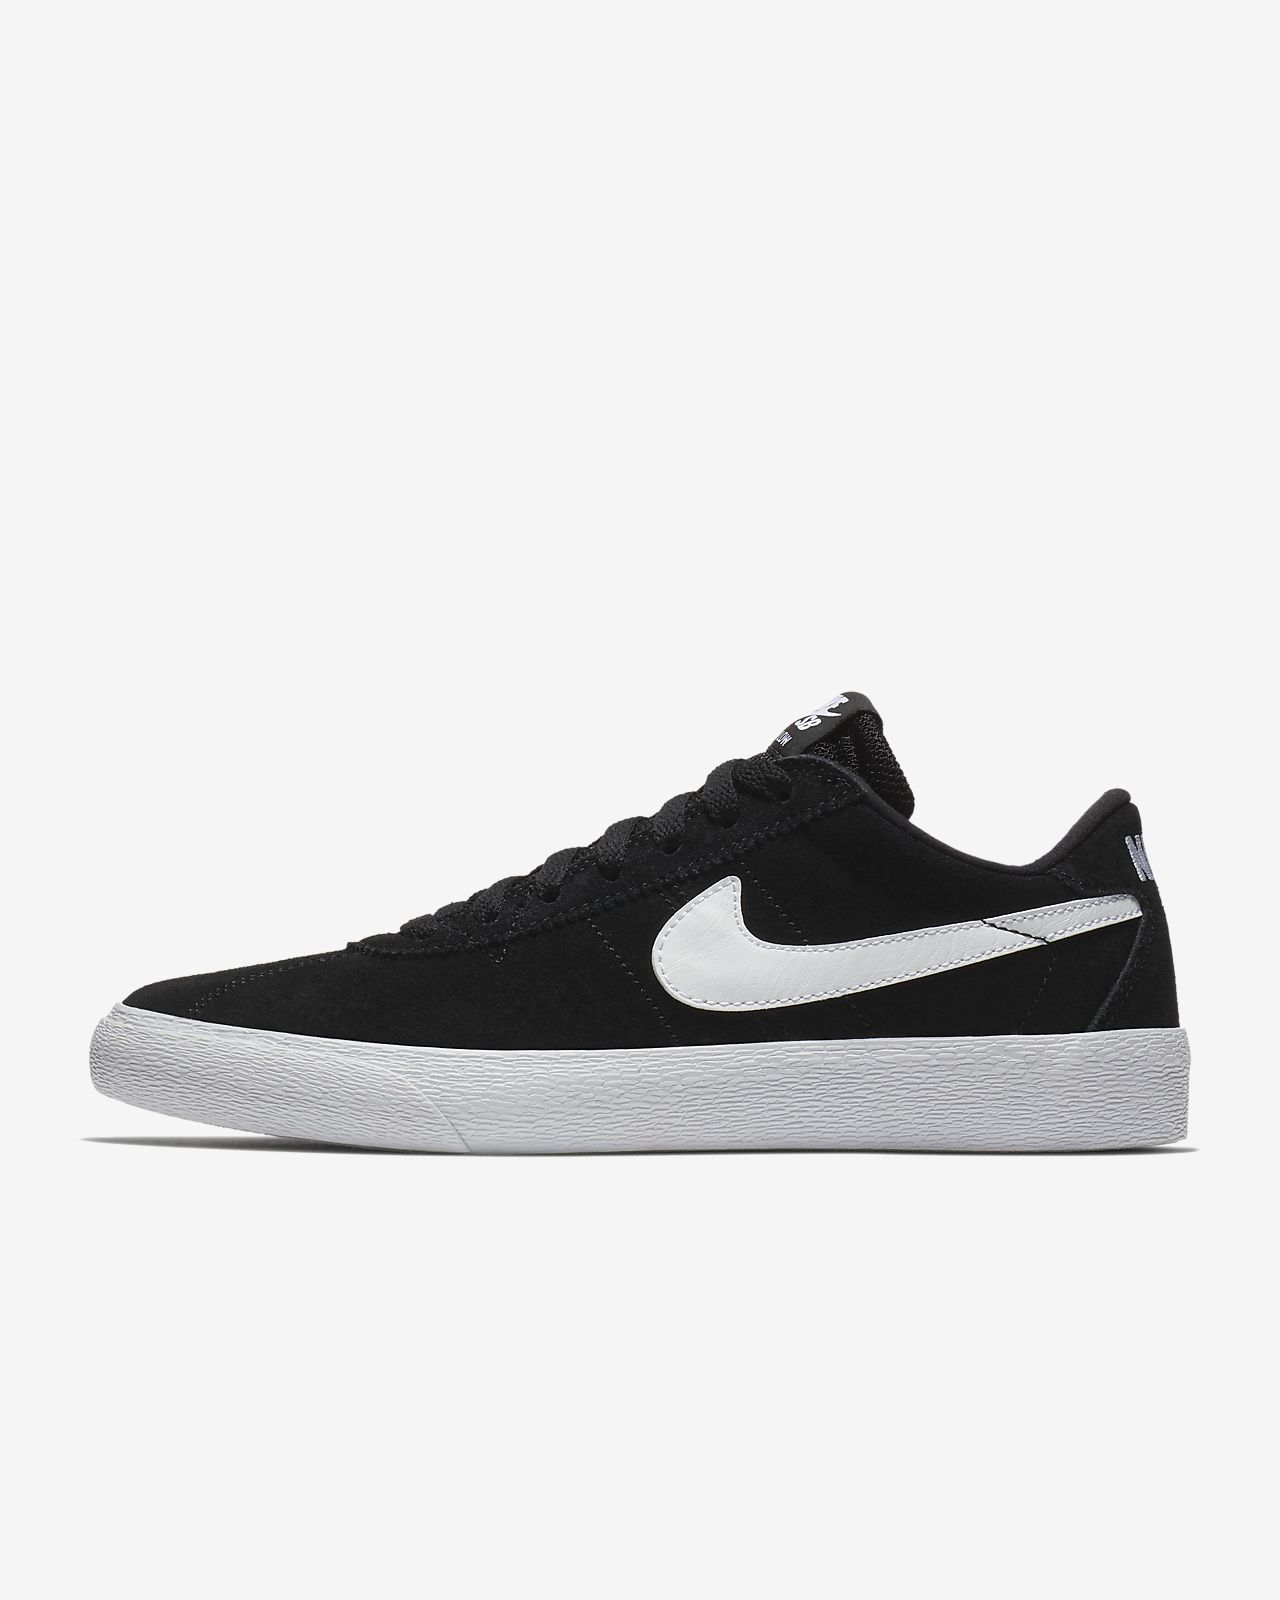 save off b6cac 4f9be Nike SB Zoom Bruin Low Women's Skateboarding Shoe. Nike.com